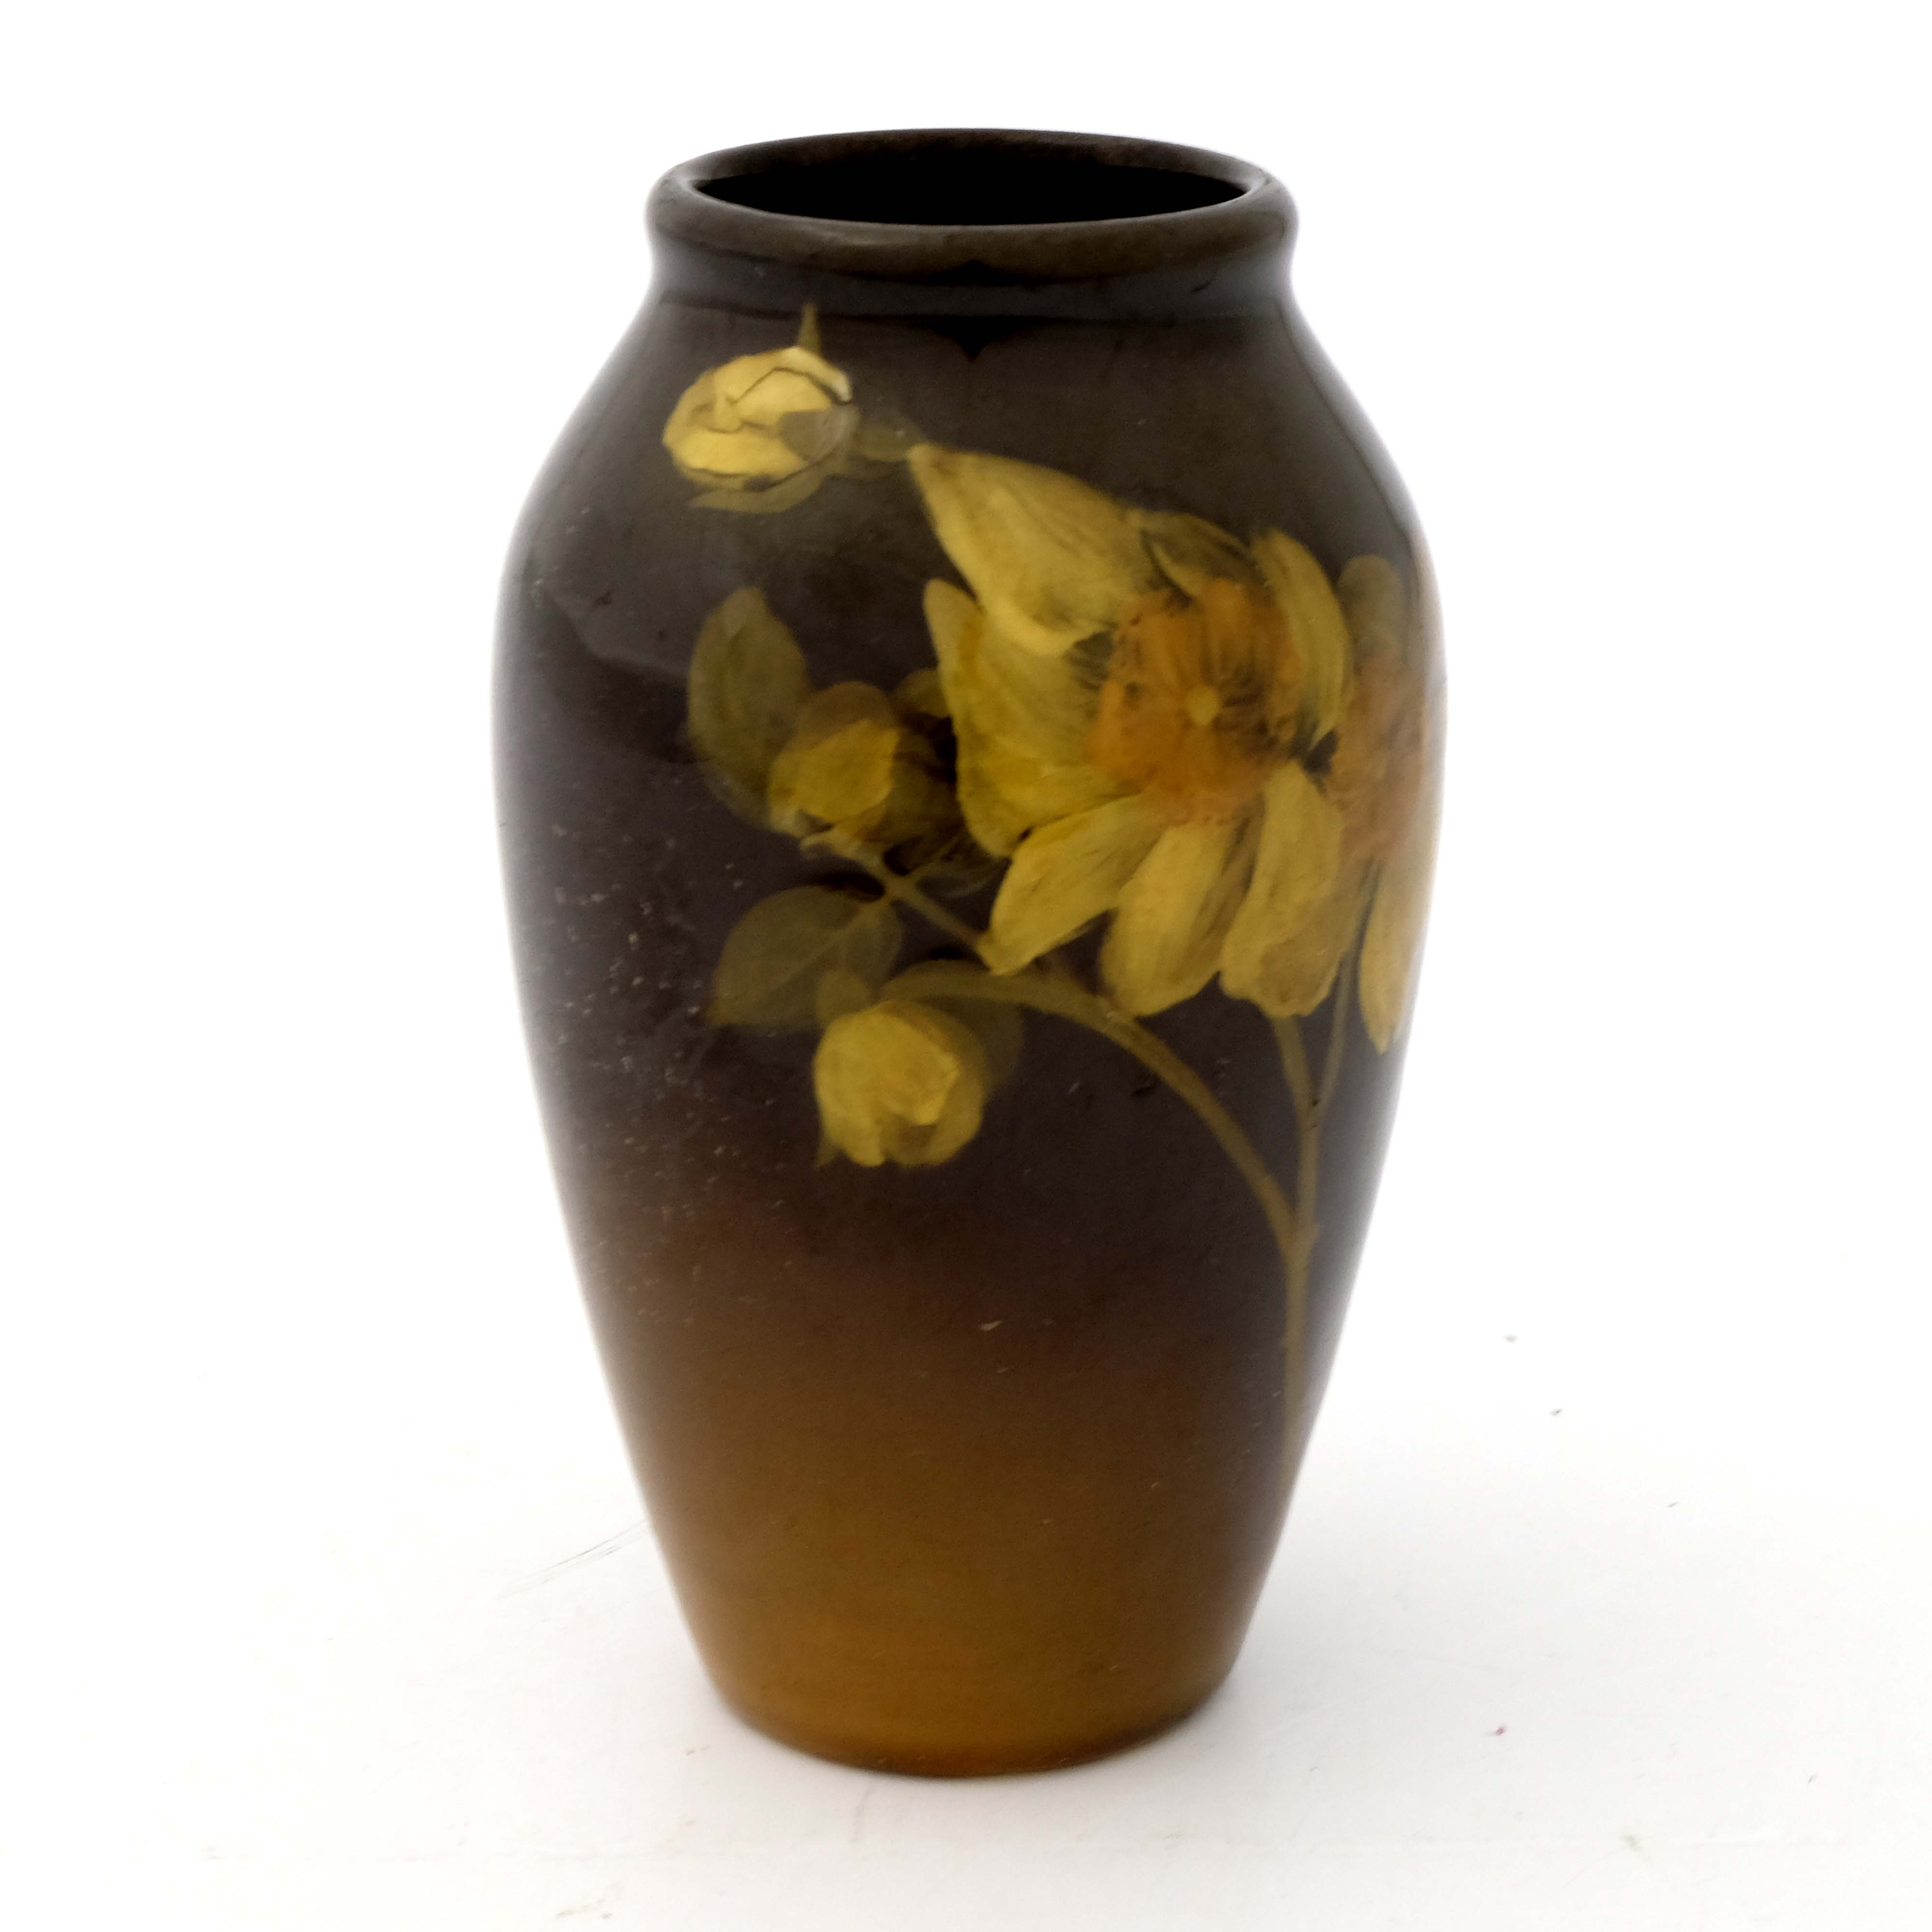 Rookwood Pottery, a slip decorated vase - Image 3 of 4